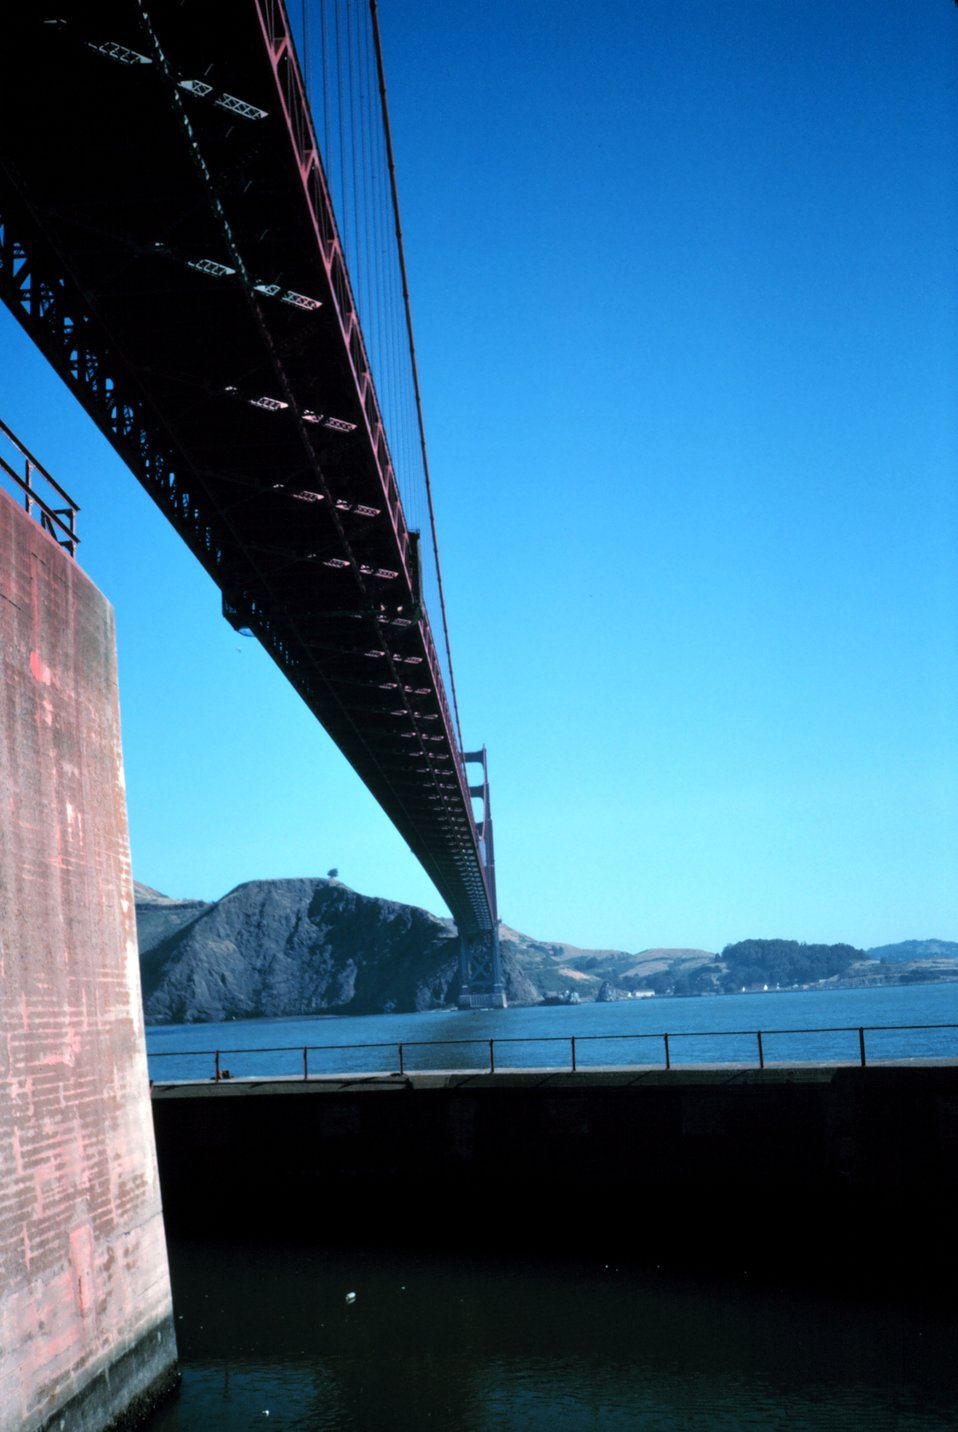 The Golden Gate Bridge as seen from the bridge's south pier looking north.